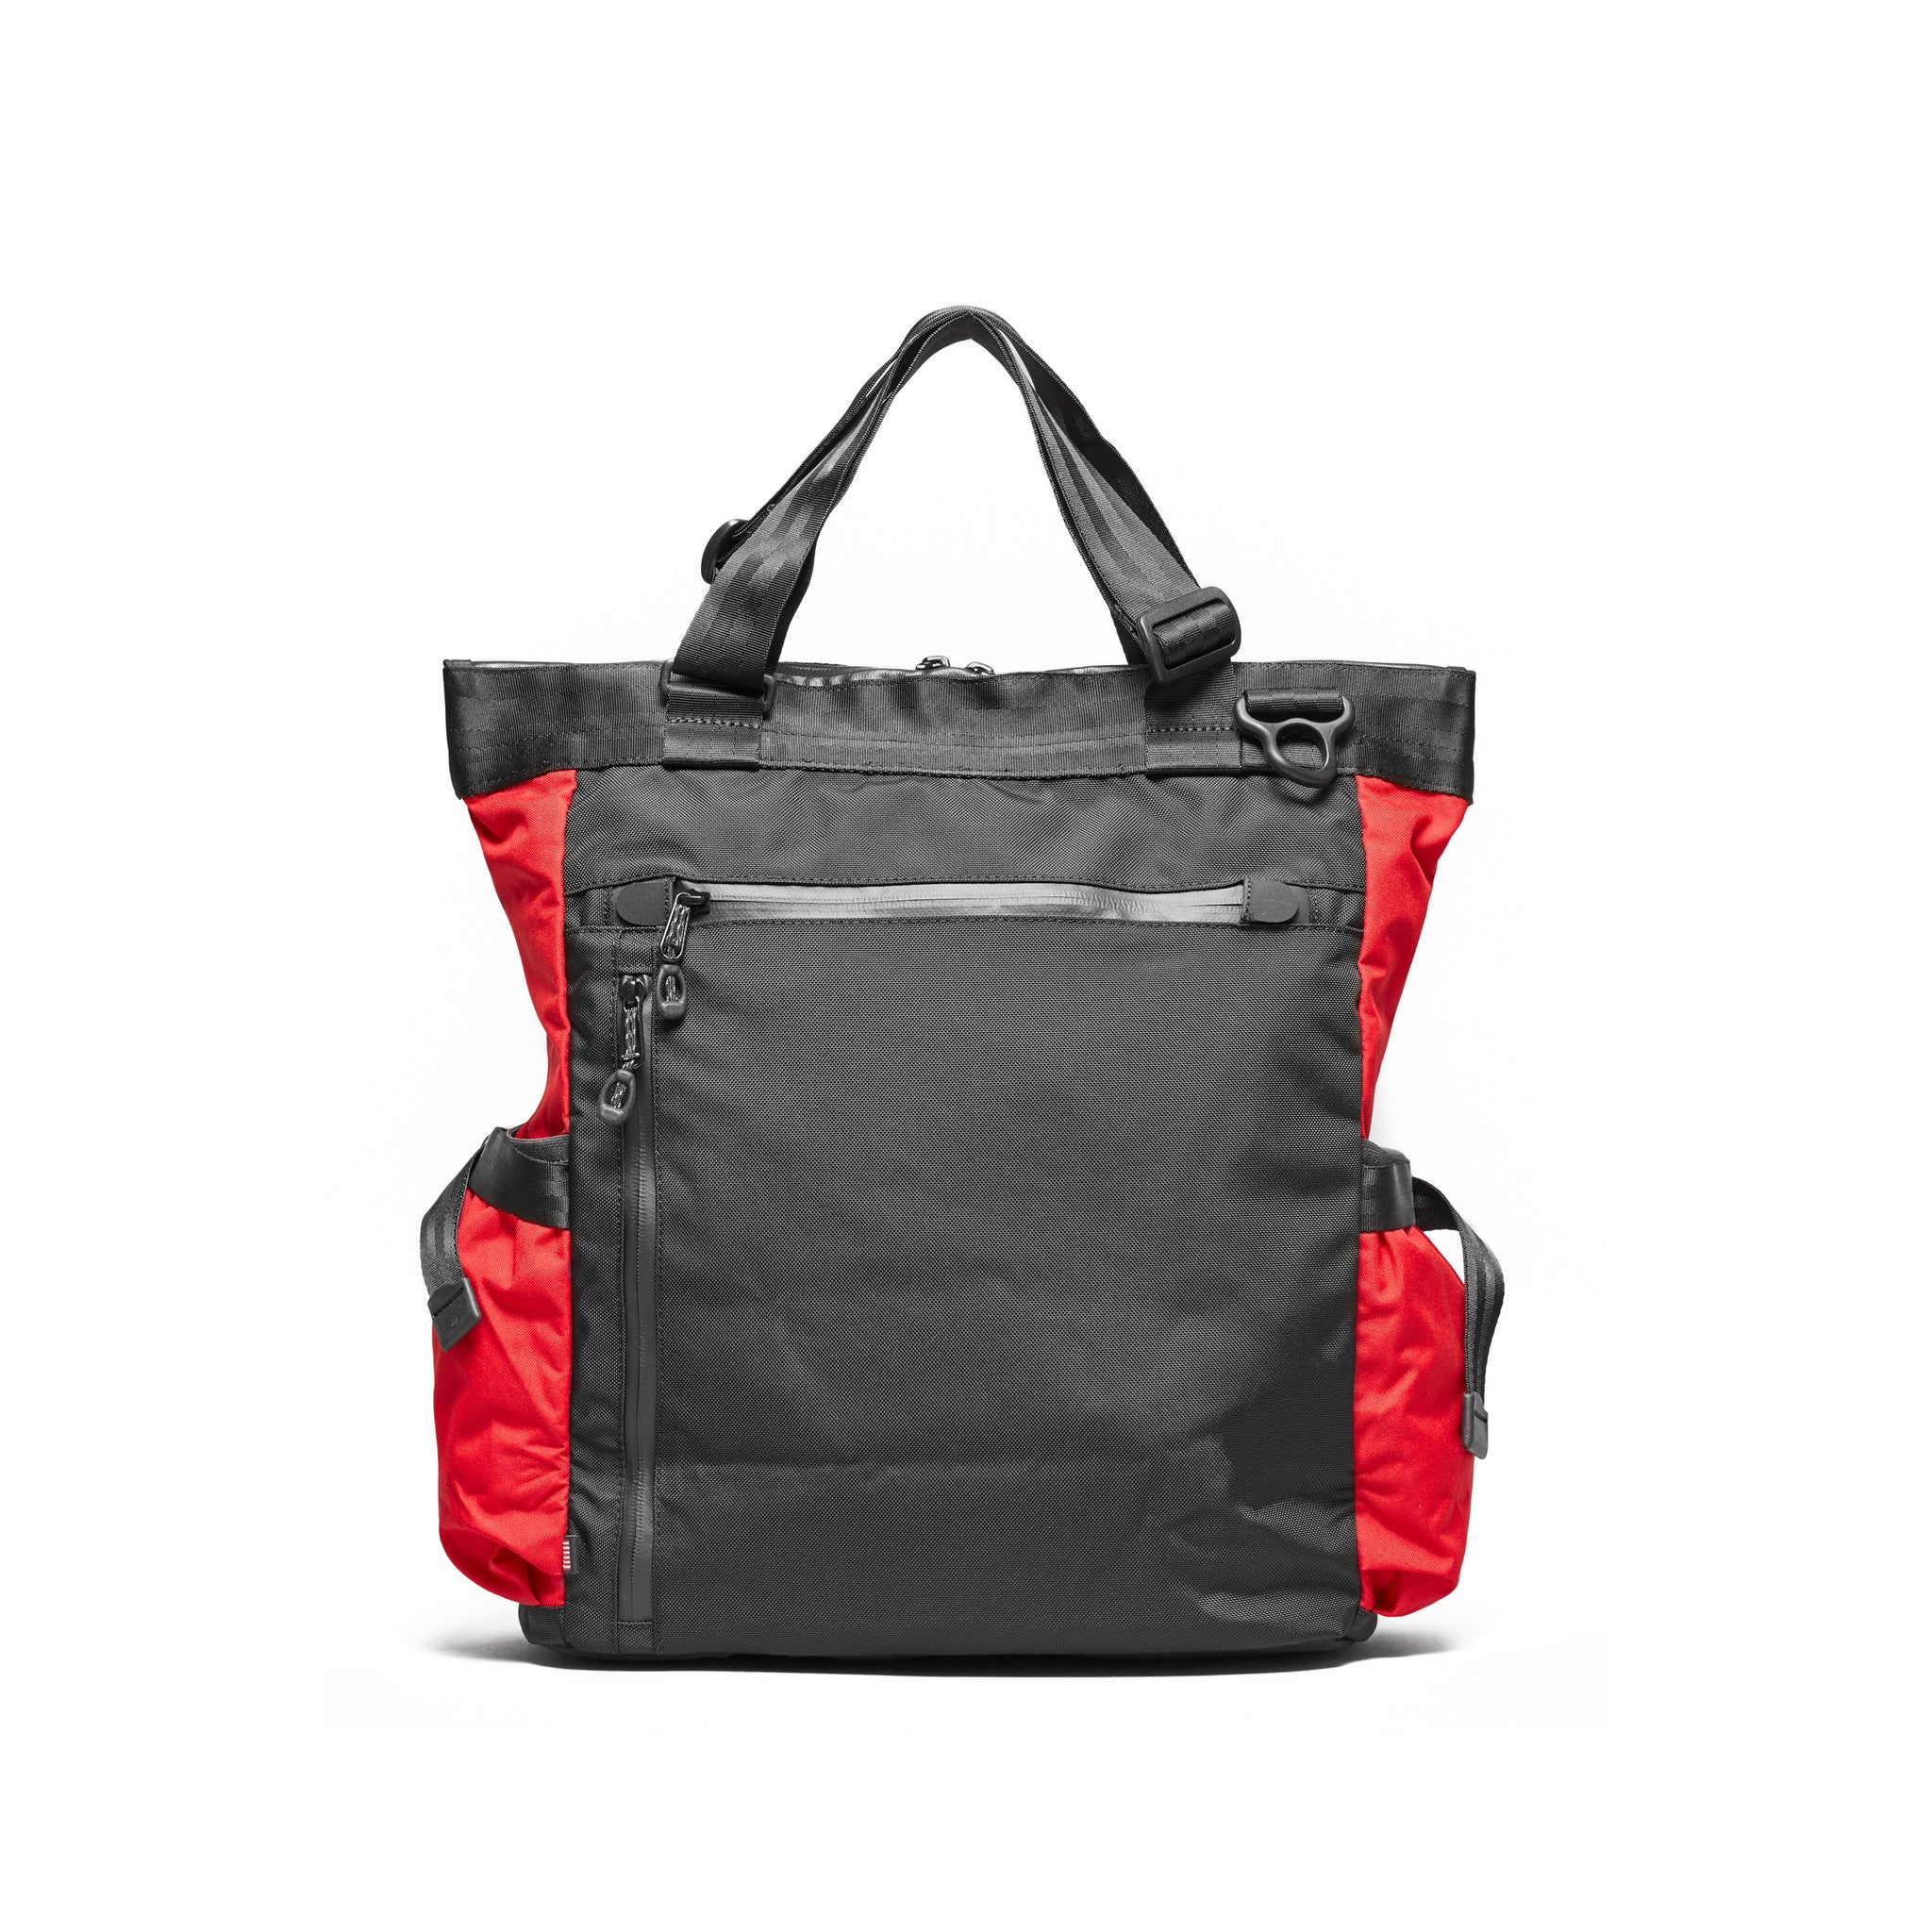 Trecknos Town Tote - Red